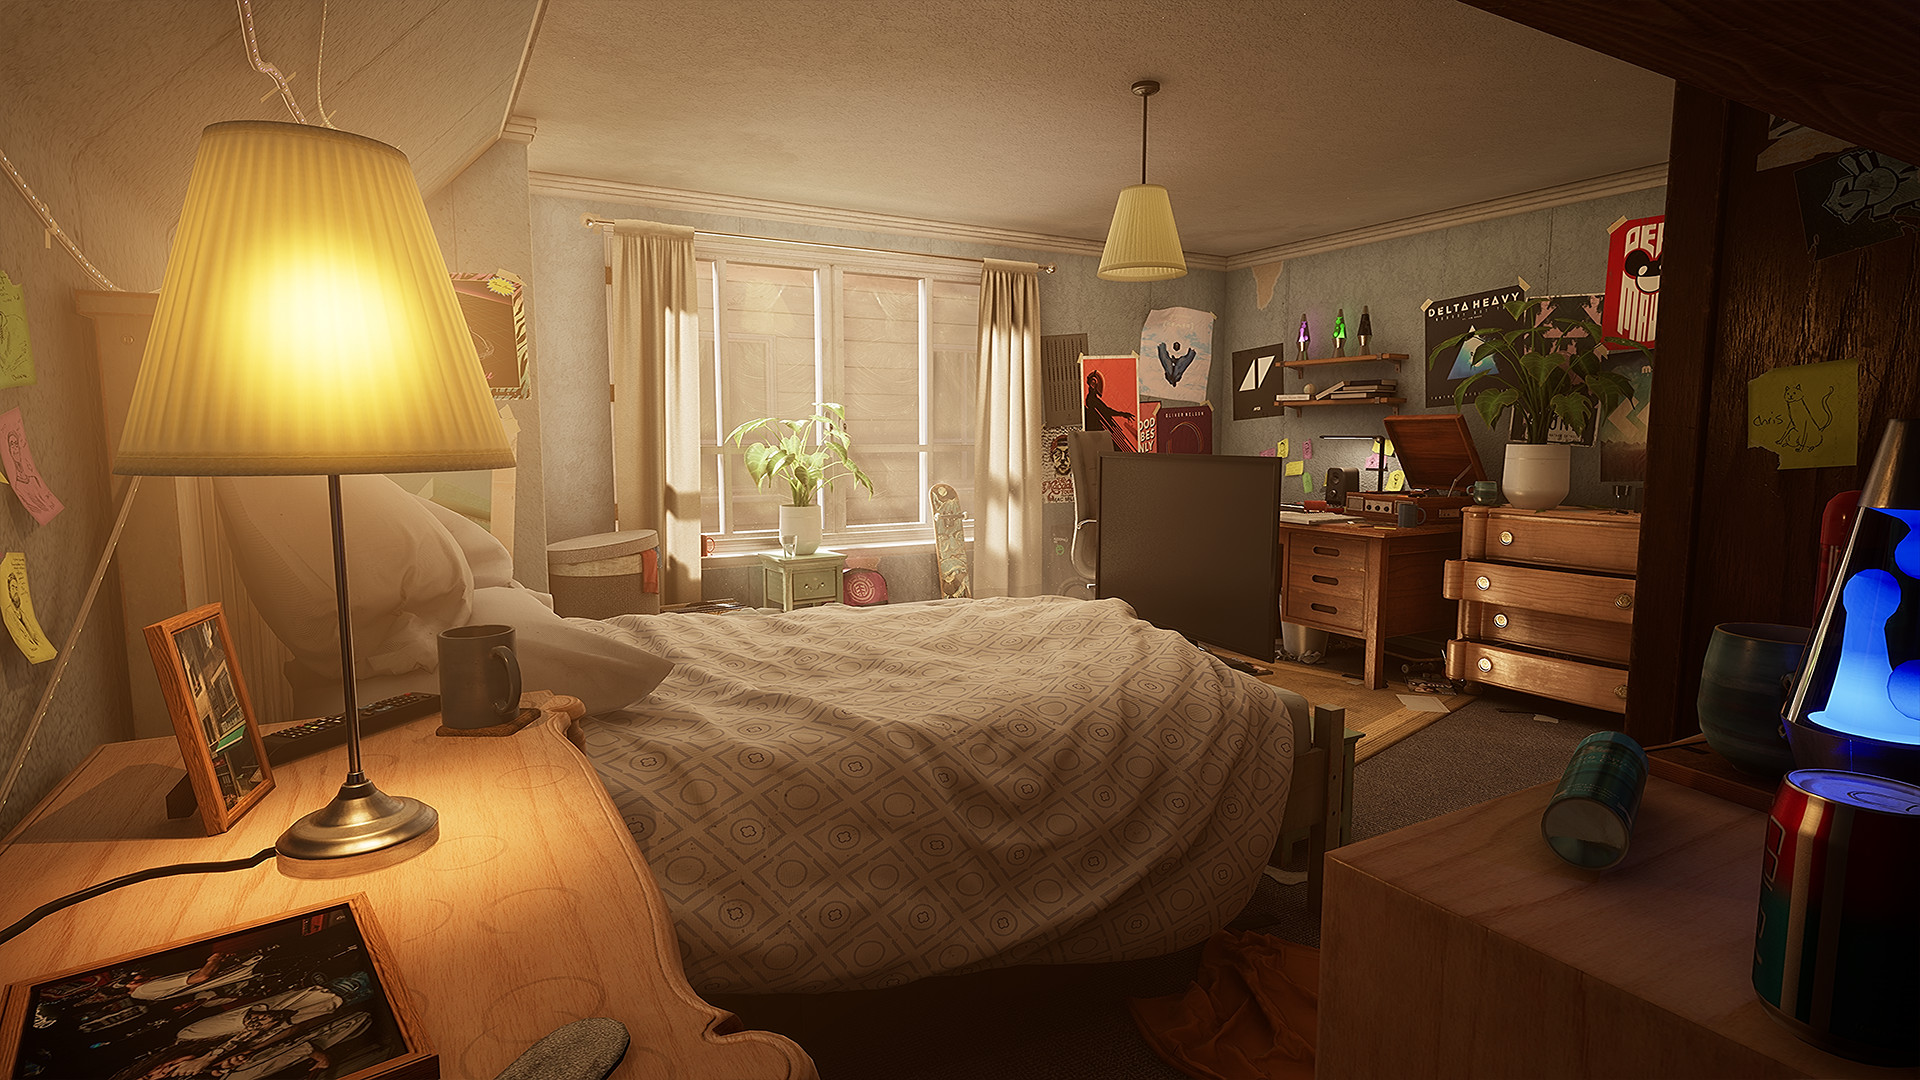 Christmas Light for Bedroom Inspirational Wip] [ue4] Teenagers Bedroom — Polycount